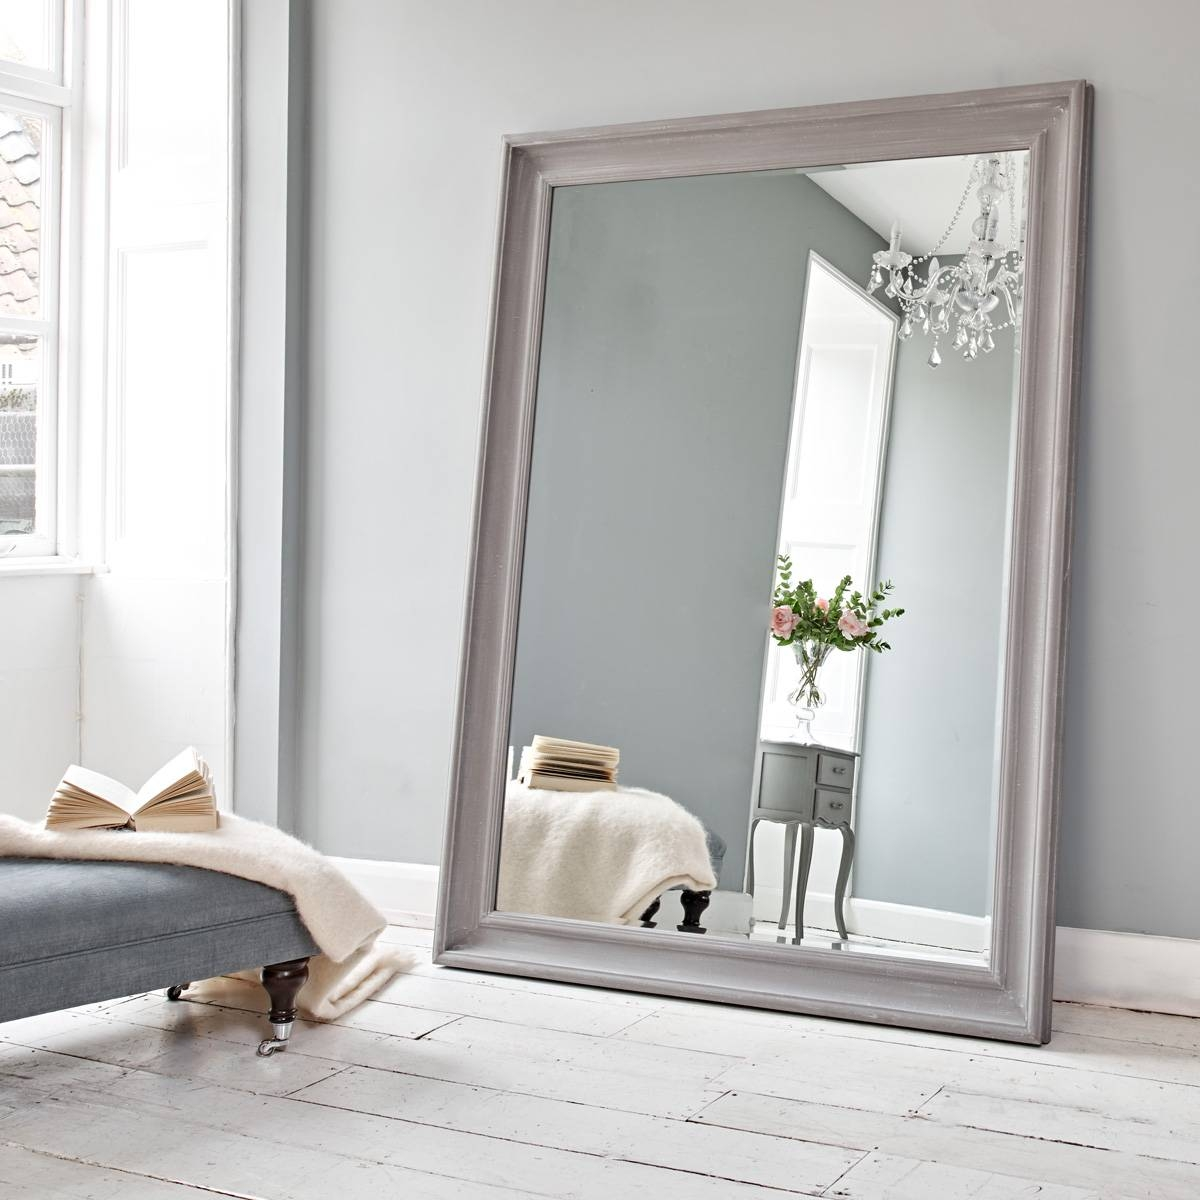 Vermont Oversized Mirror - Danish Grey | Brissi with regard to Oversized Mirrors (Image 14 of 15)